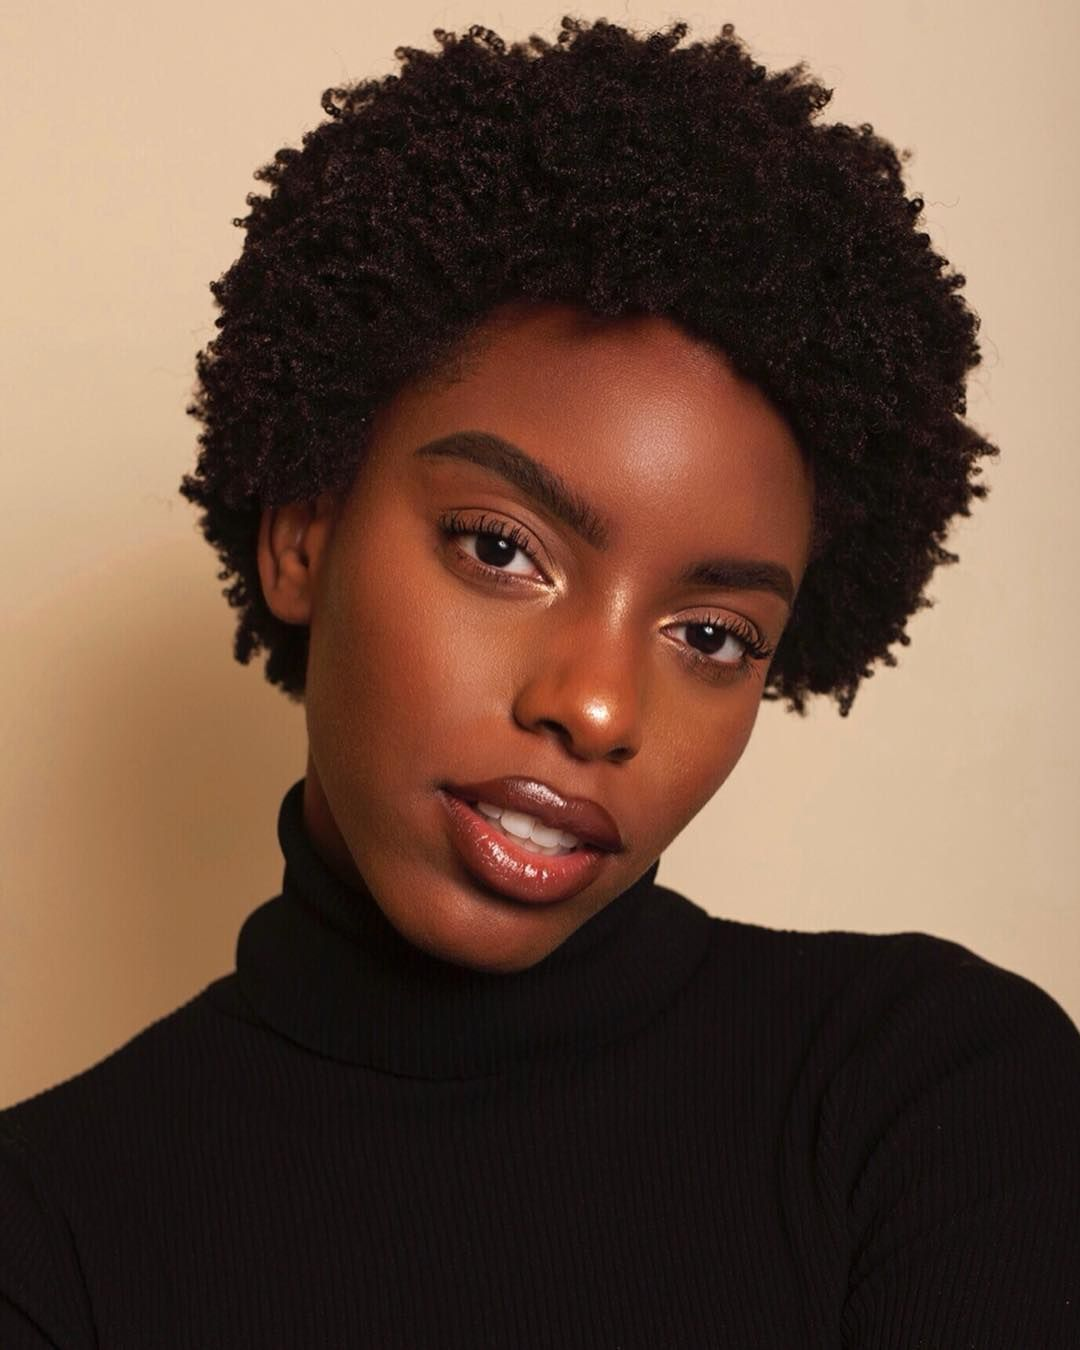 Afro Appreciation Post 10 Girls Who Slay Their Natural Hair Afro Hairstyle Ideas Afro Textured Hair Afro Hairstyles Natural Hair Styles